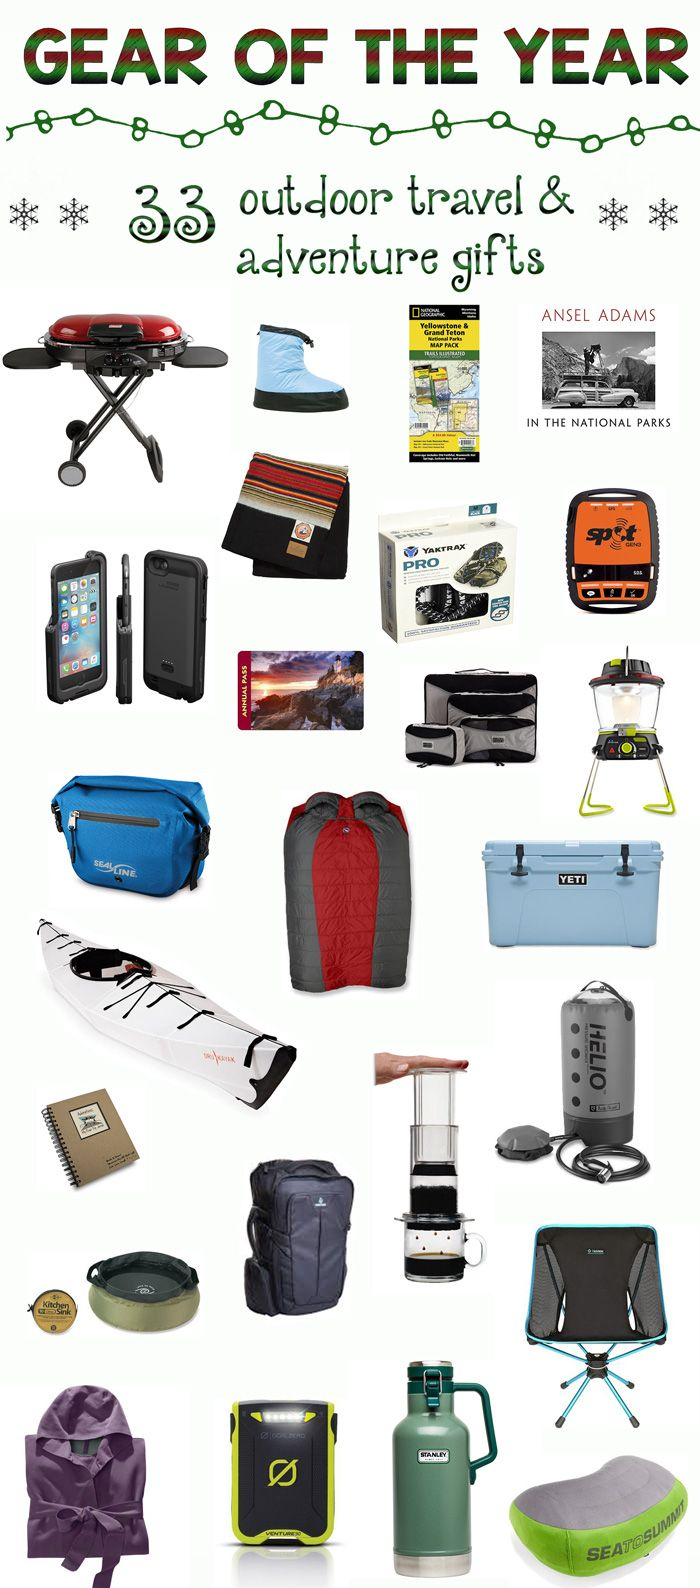 The ultimate holiday gift list and the only one you'll need to complete your shopping this year. Features the best gear of the year and 33 awesome outdoor travel and adventure gifts.